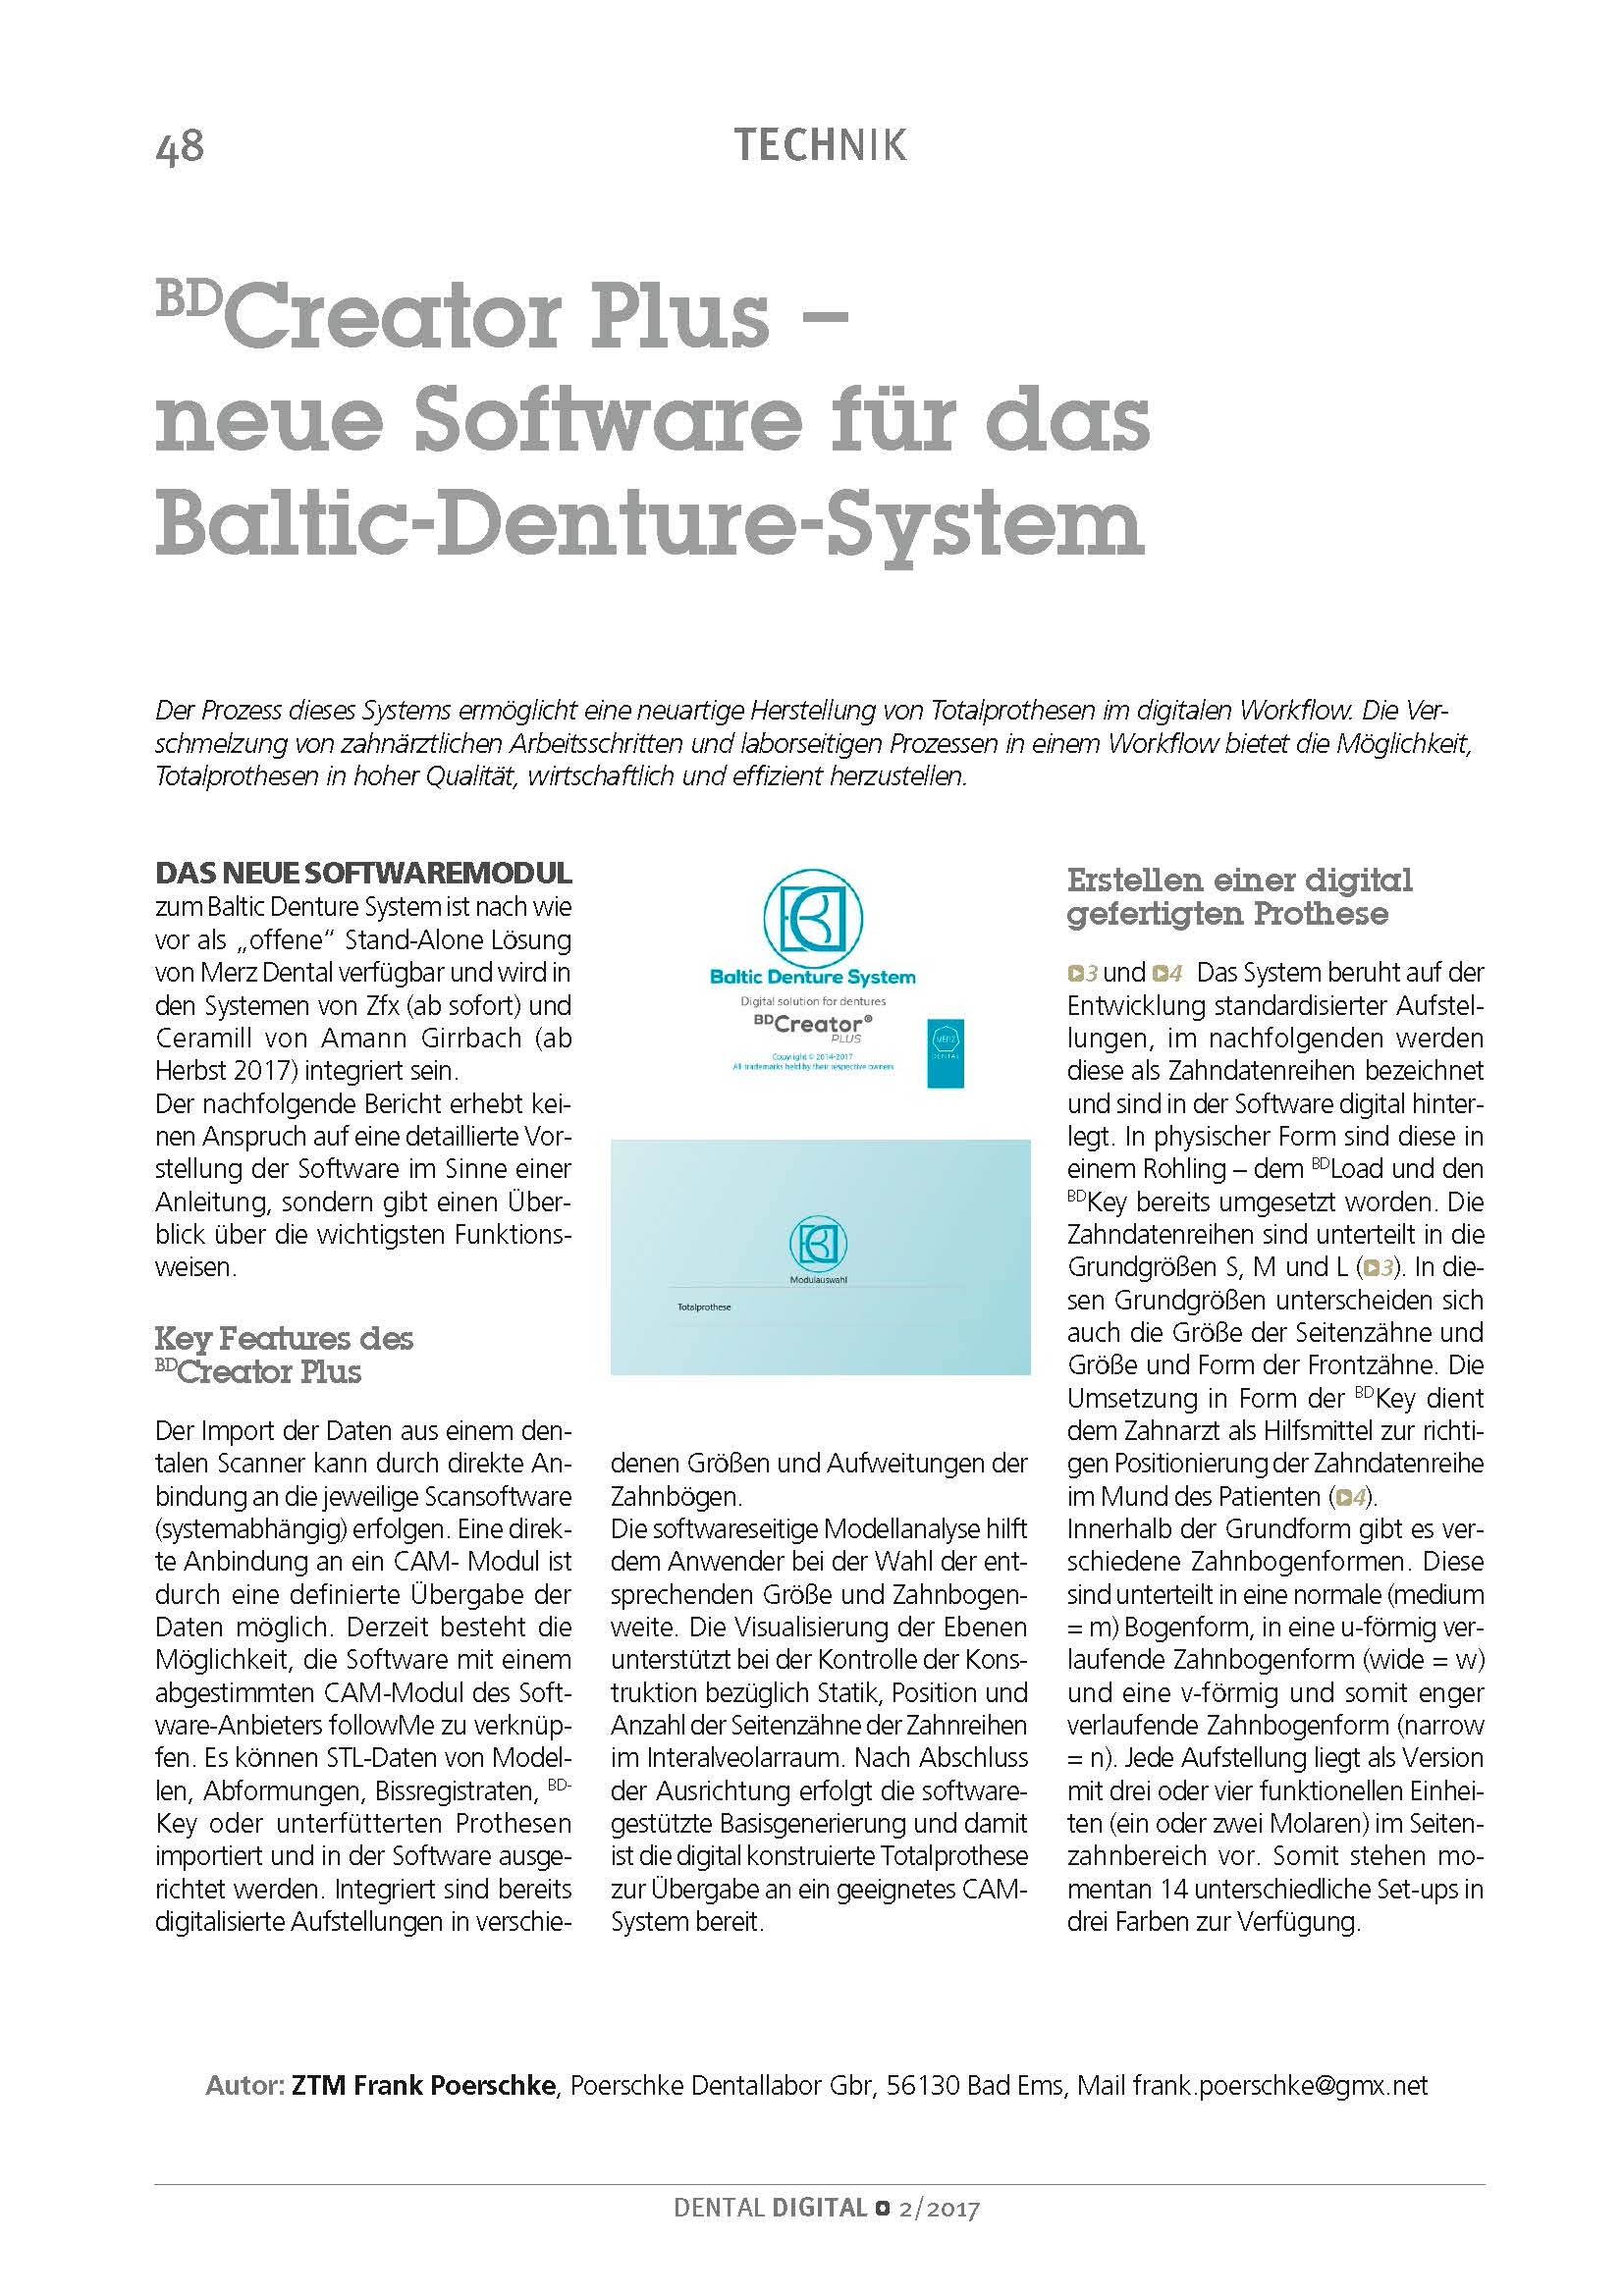 "download image - DENTAL DIGITAL, Juni 2017: ZTM Frank Poerschke – ""BD Creator Plus – neue Software für das Baltic Denture System"""